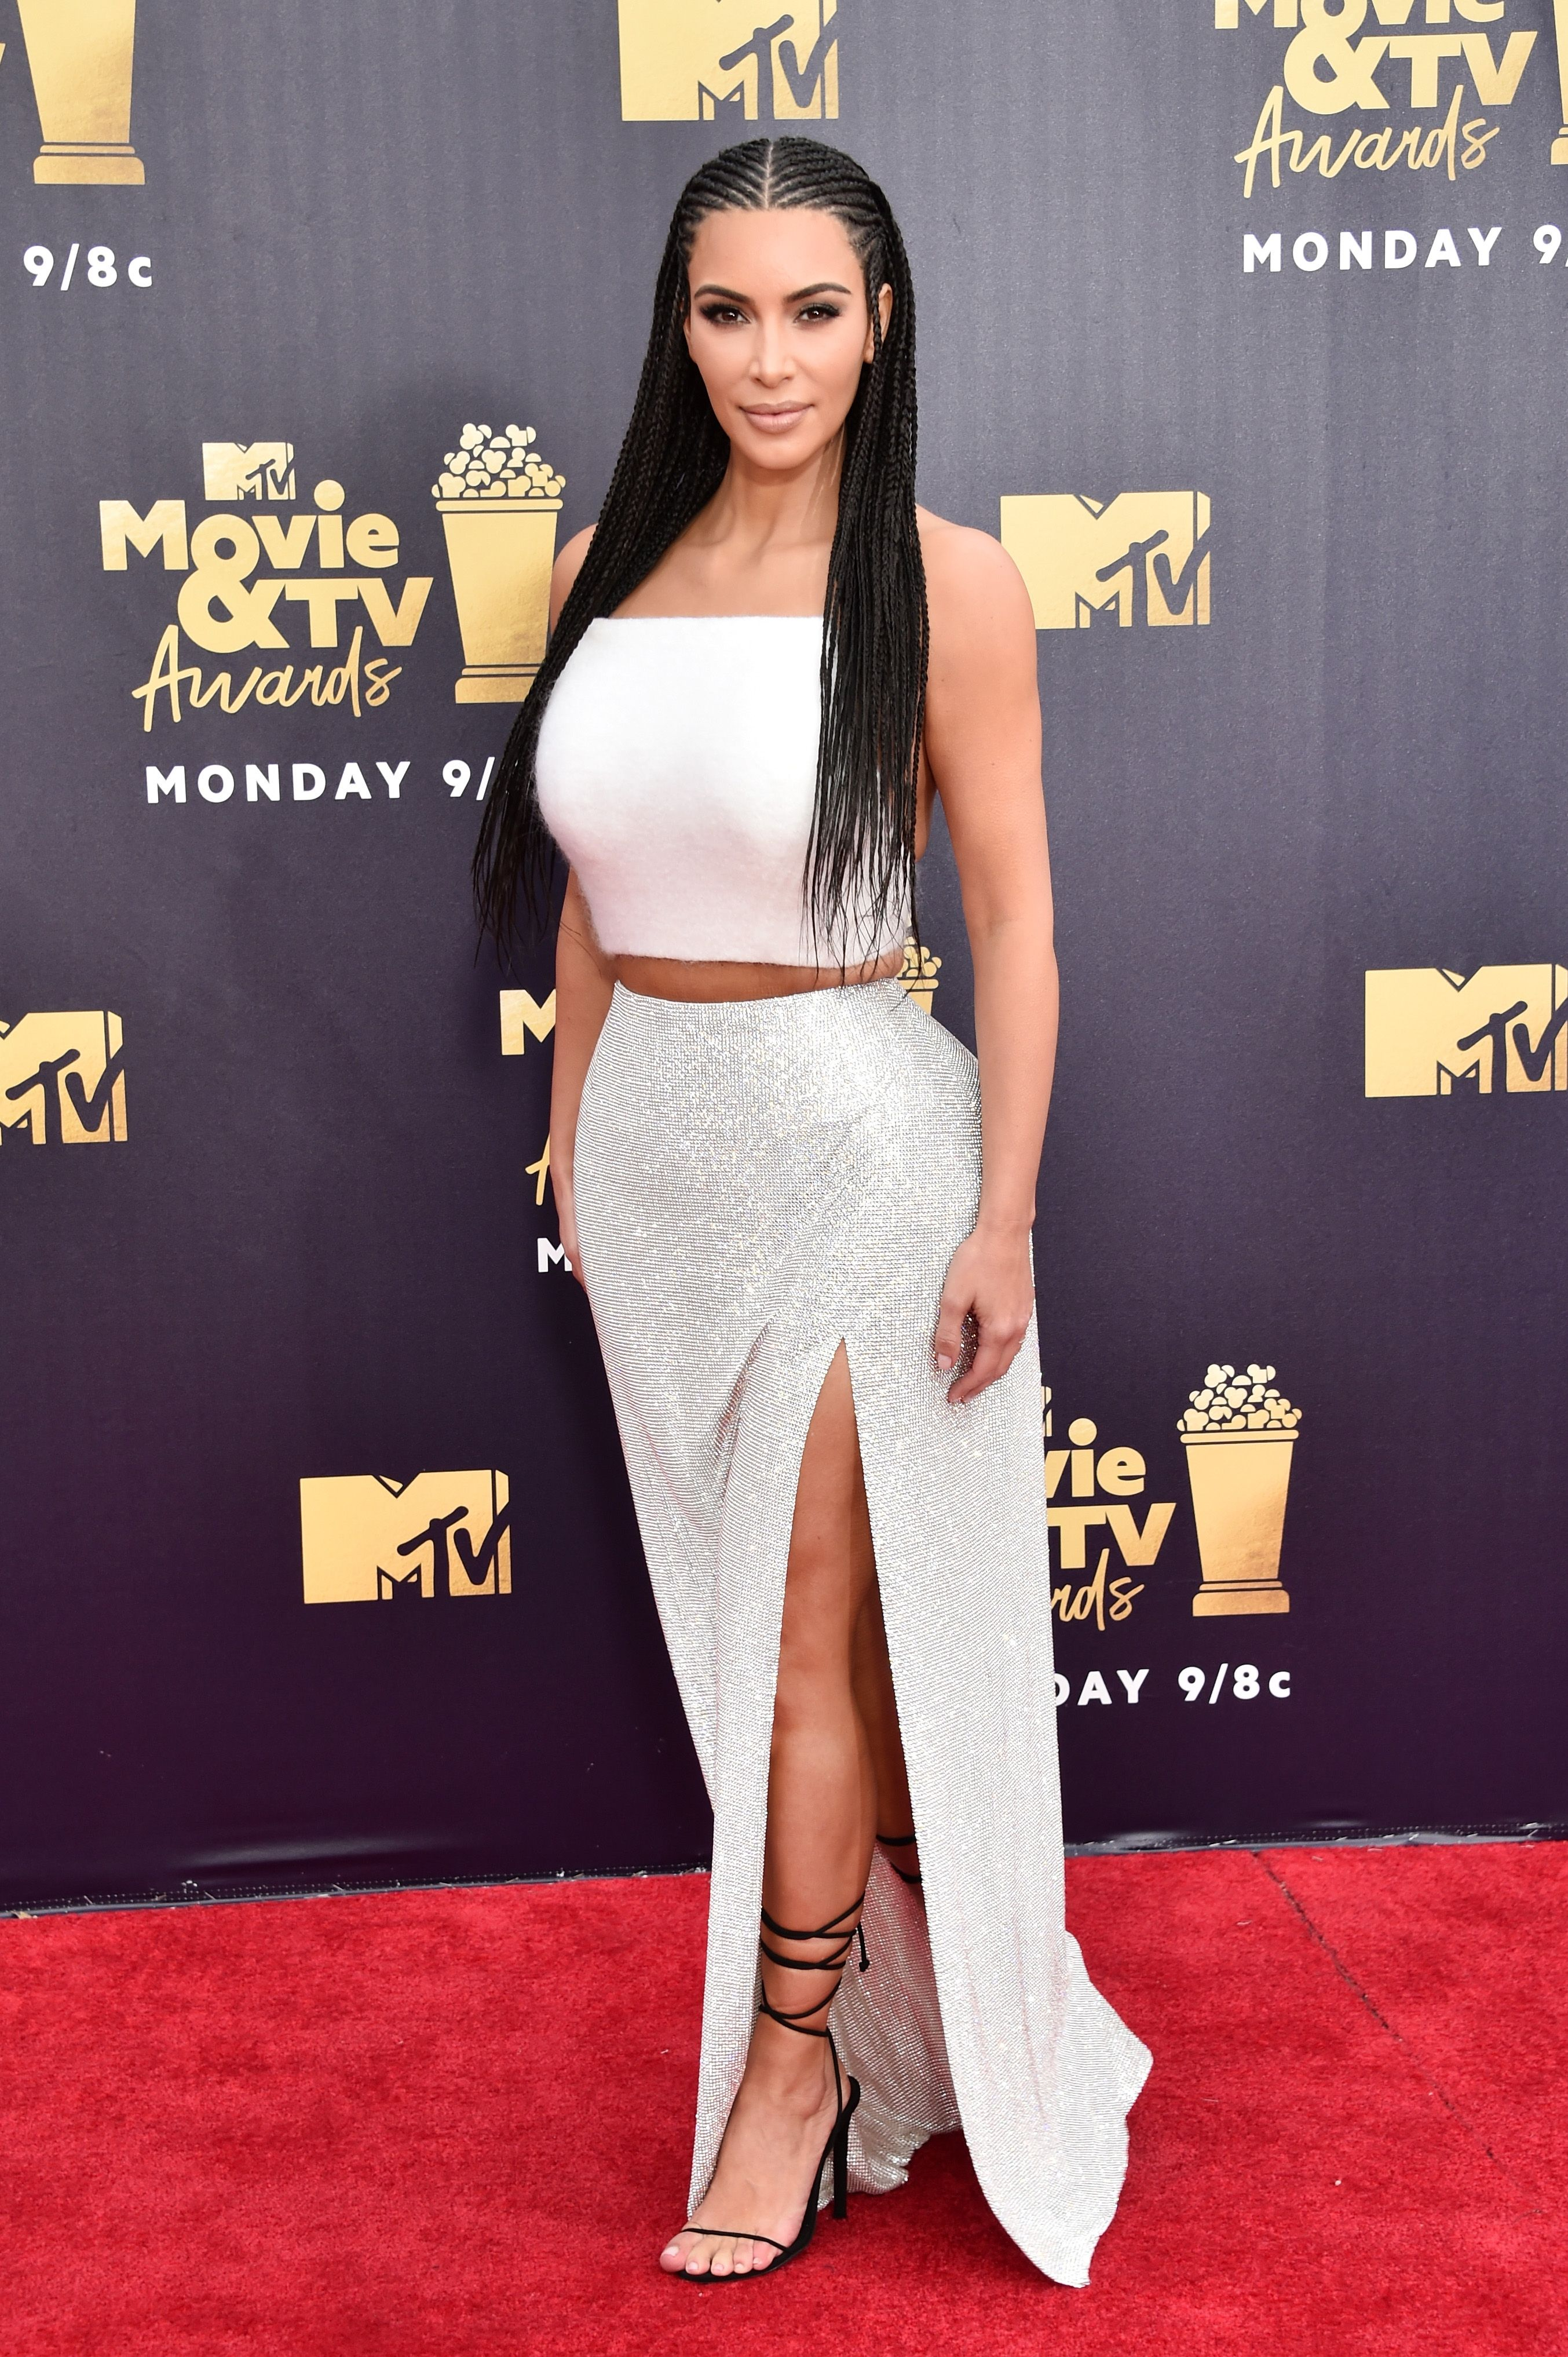 Mtv awards movie red carpet pictures